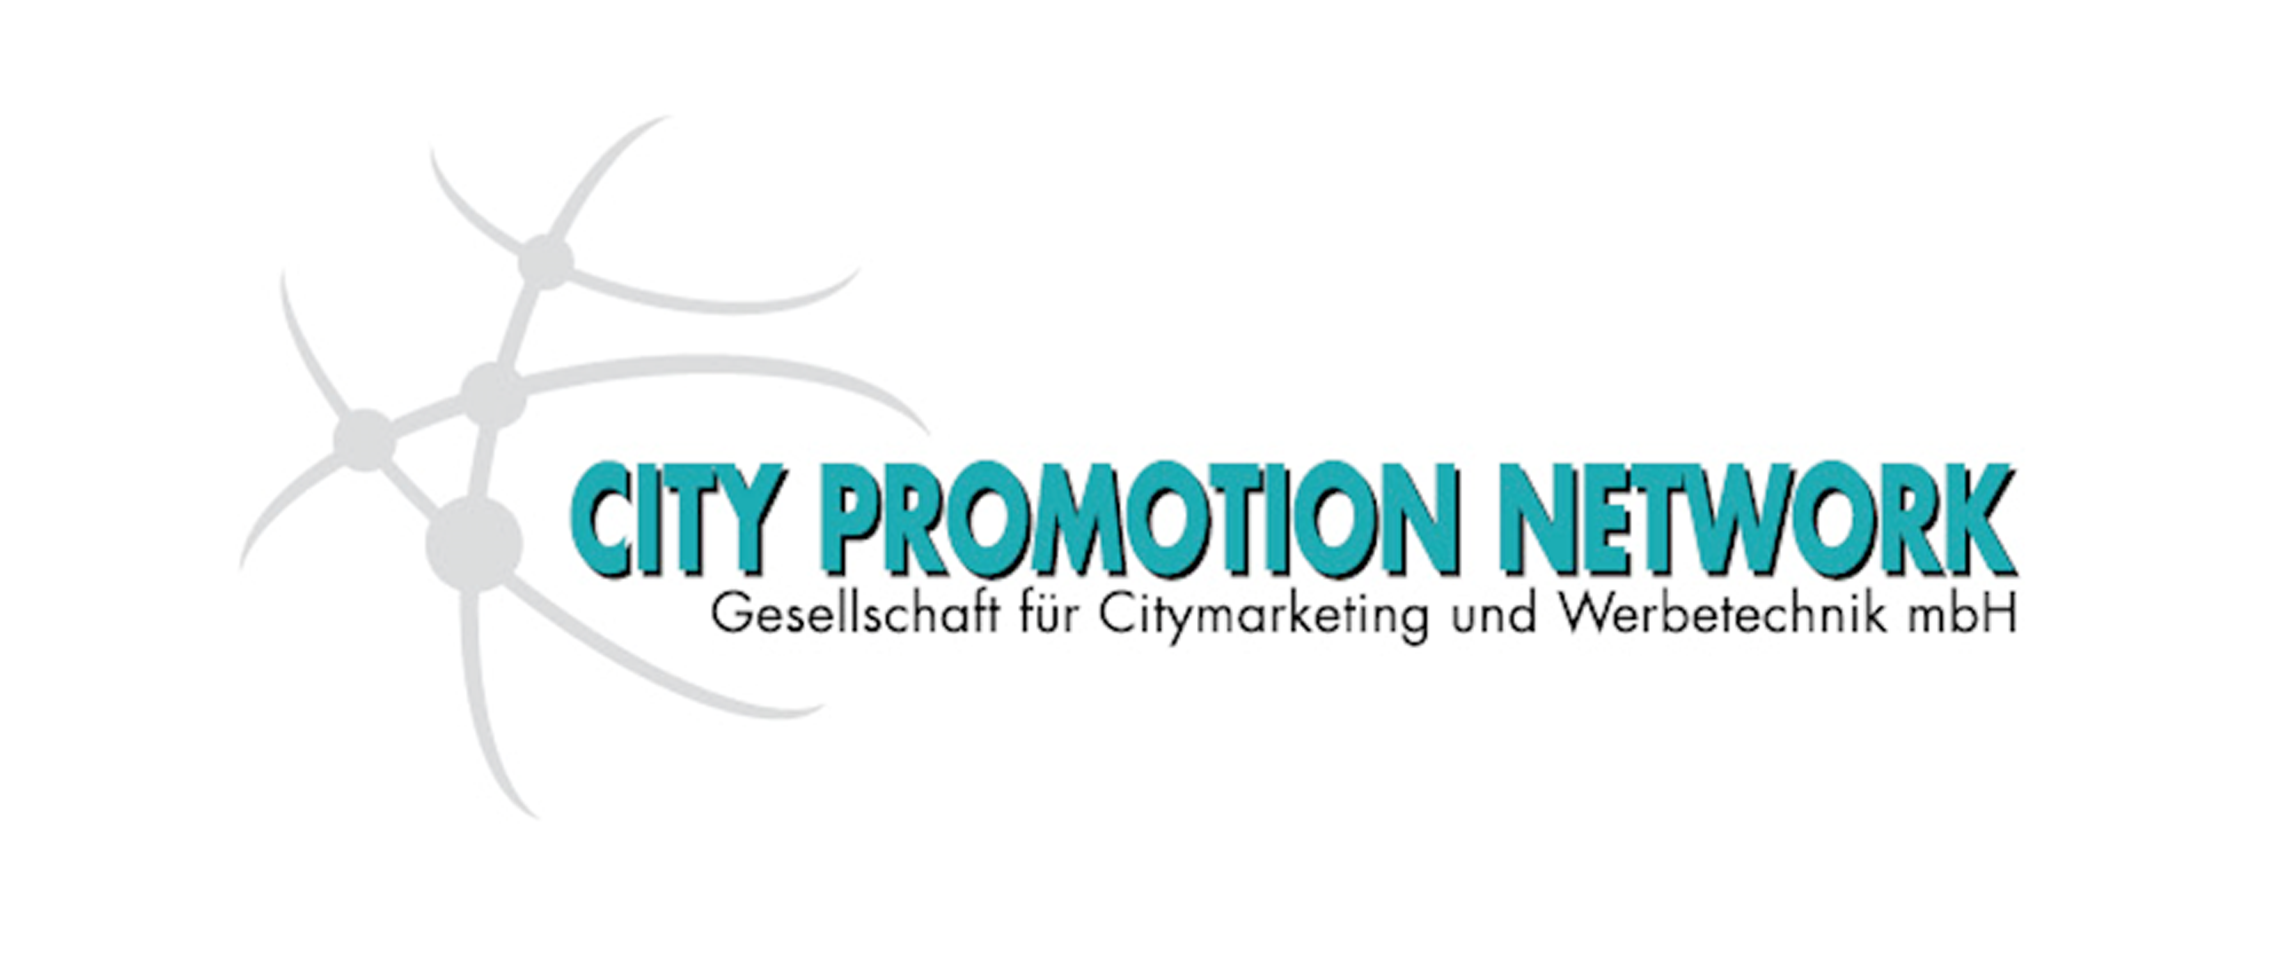 City Promotion Network